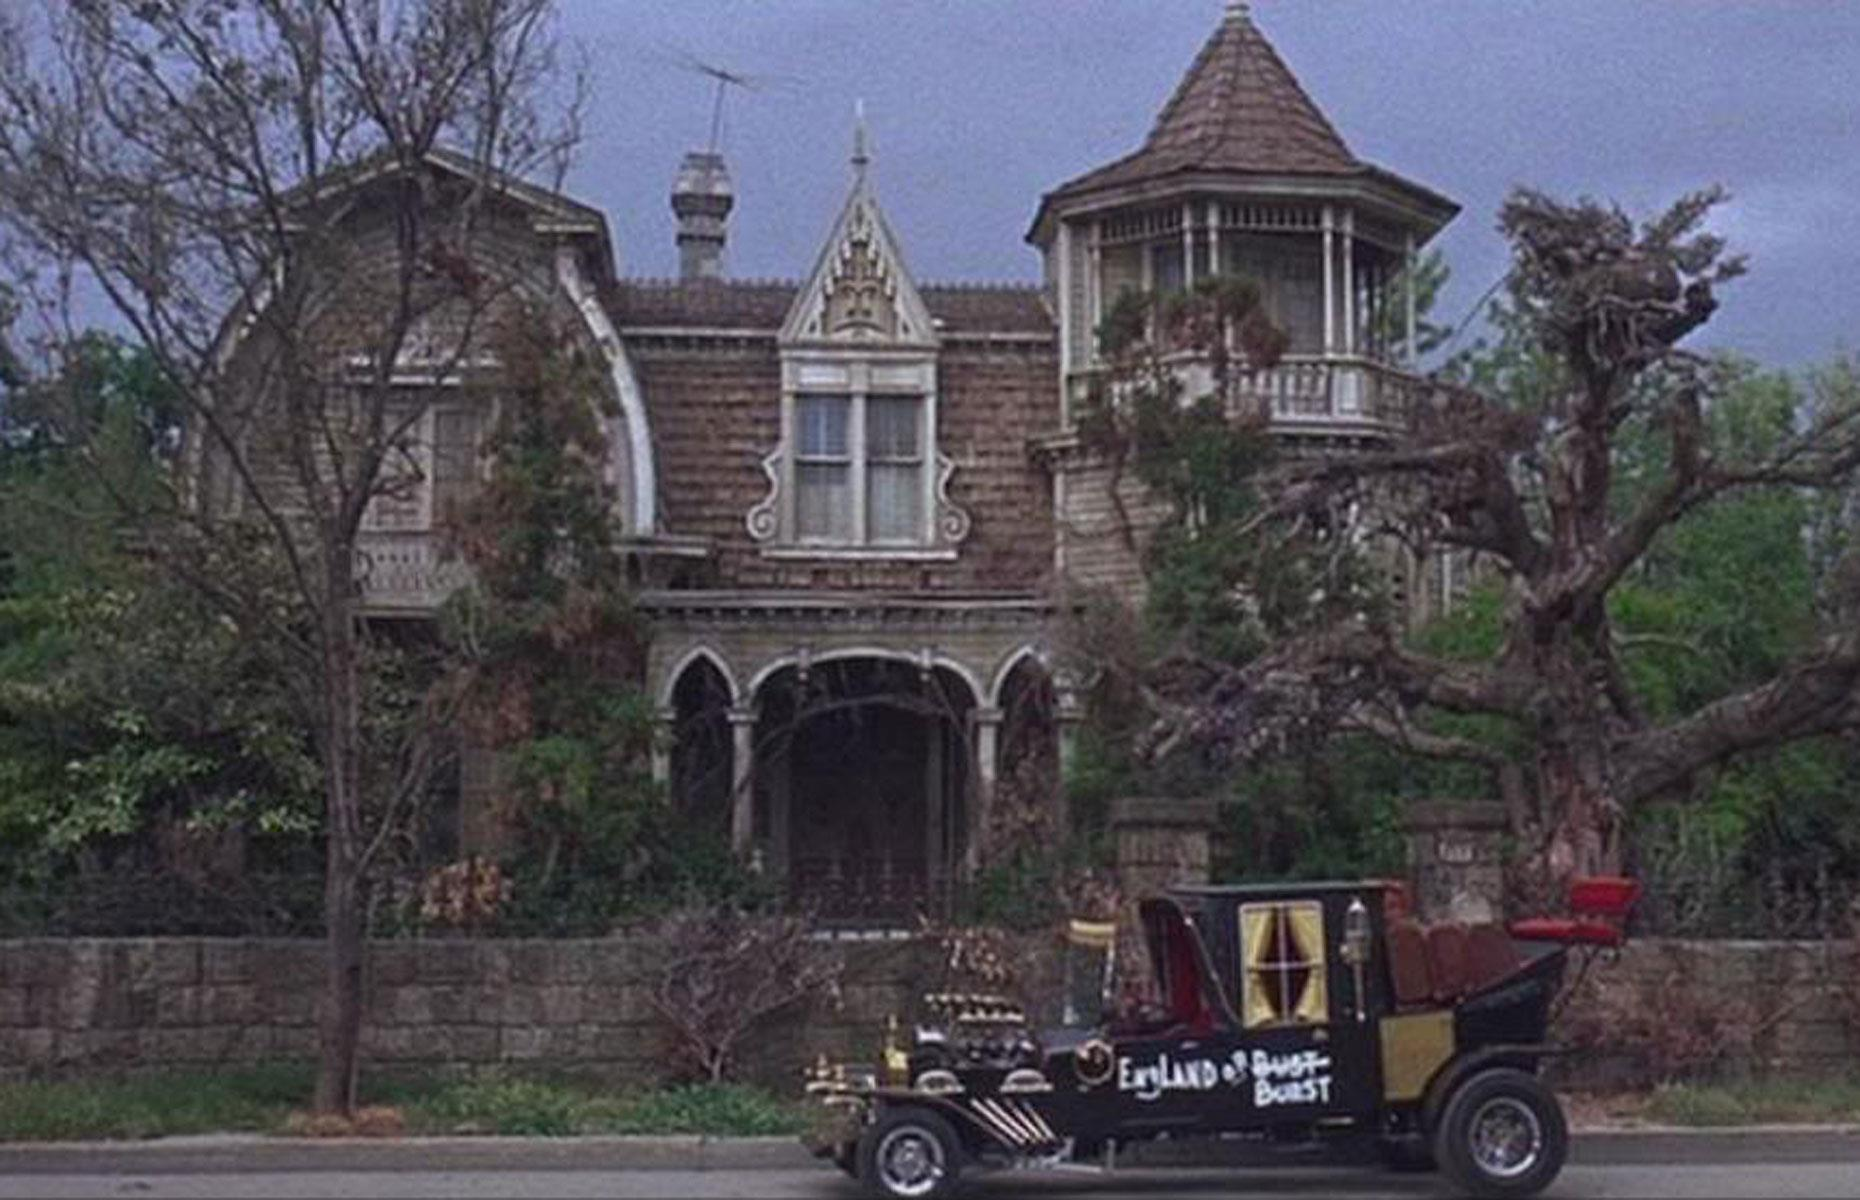 c014d787 fbc0 43bb aab7 c2d903803db0 Courtesy Zombiehorror01 scr 10 Fun Facts You Never Knew About The 'Burbs